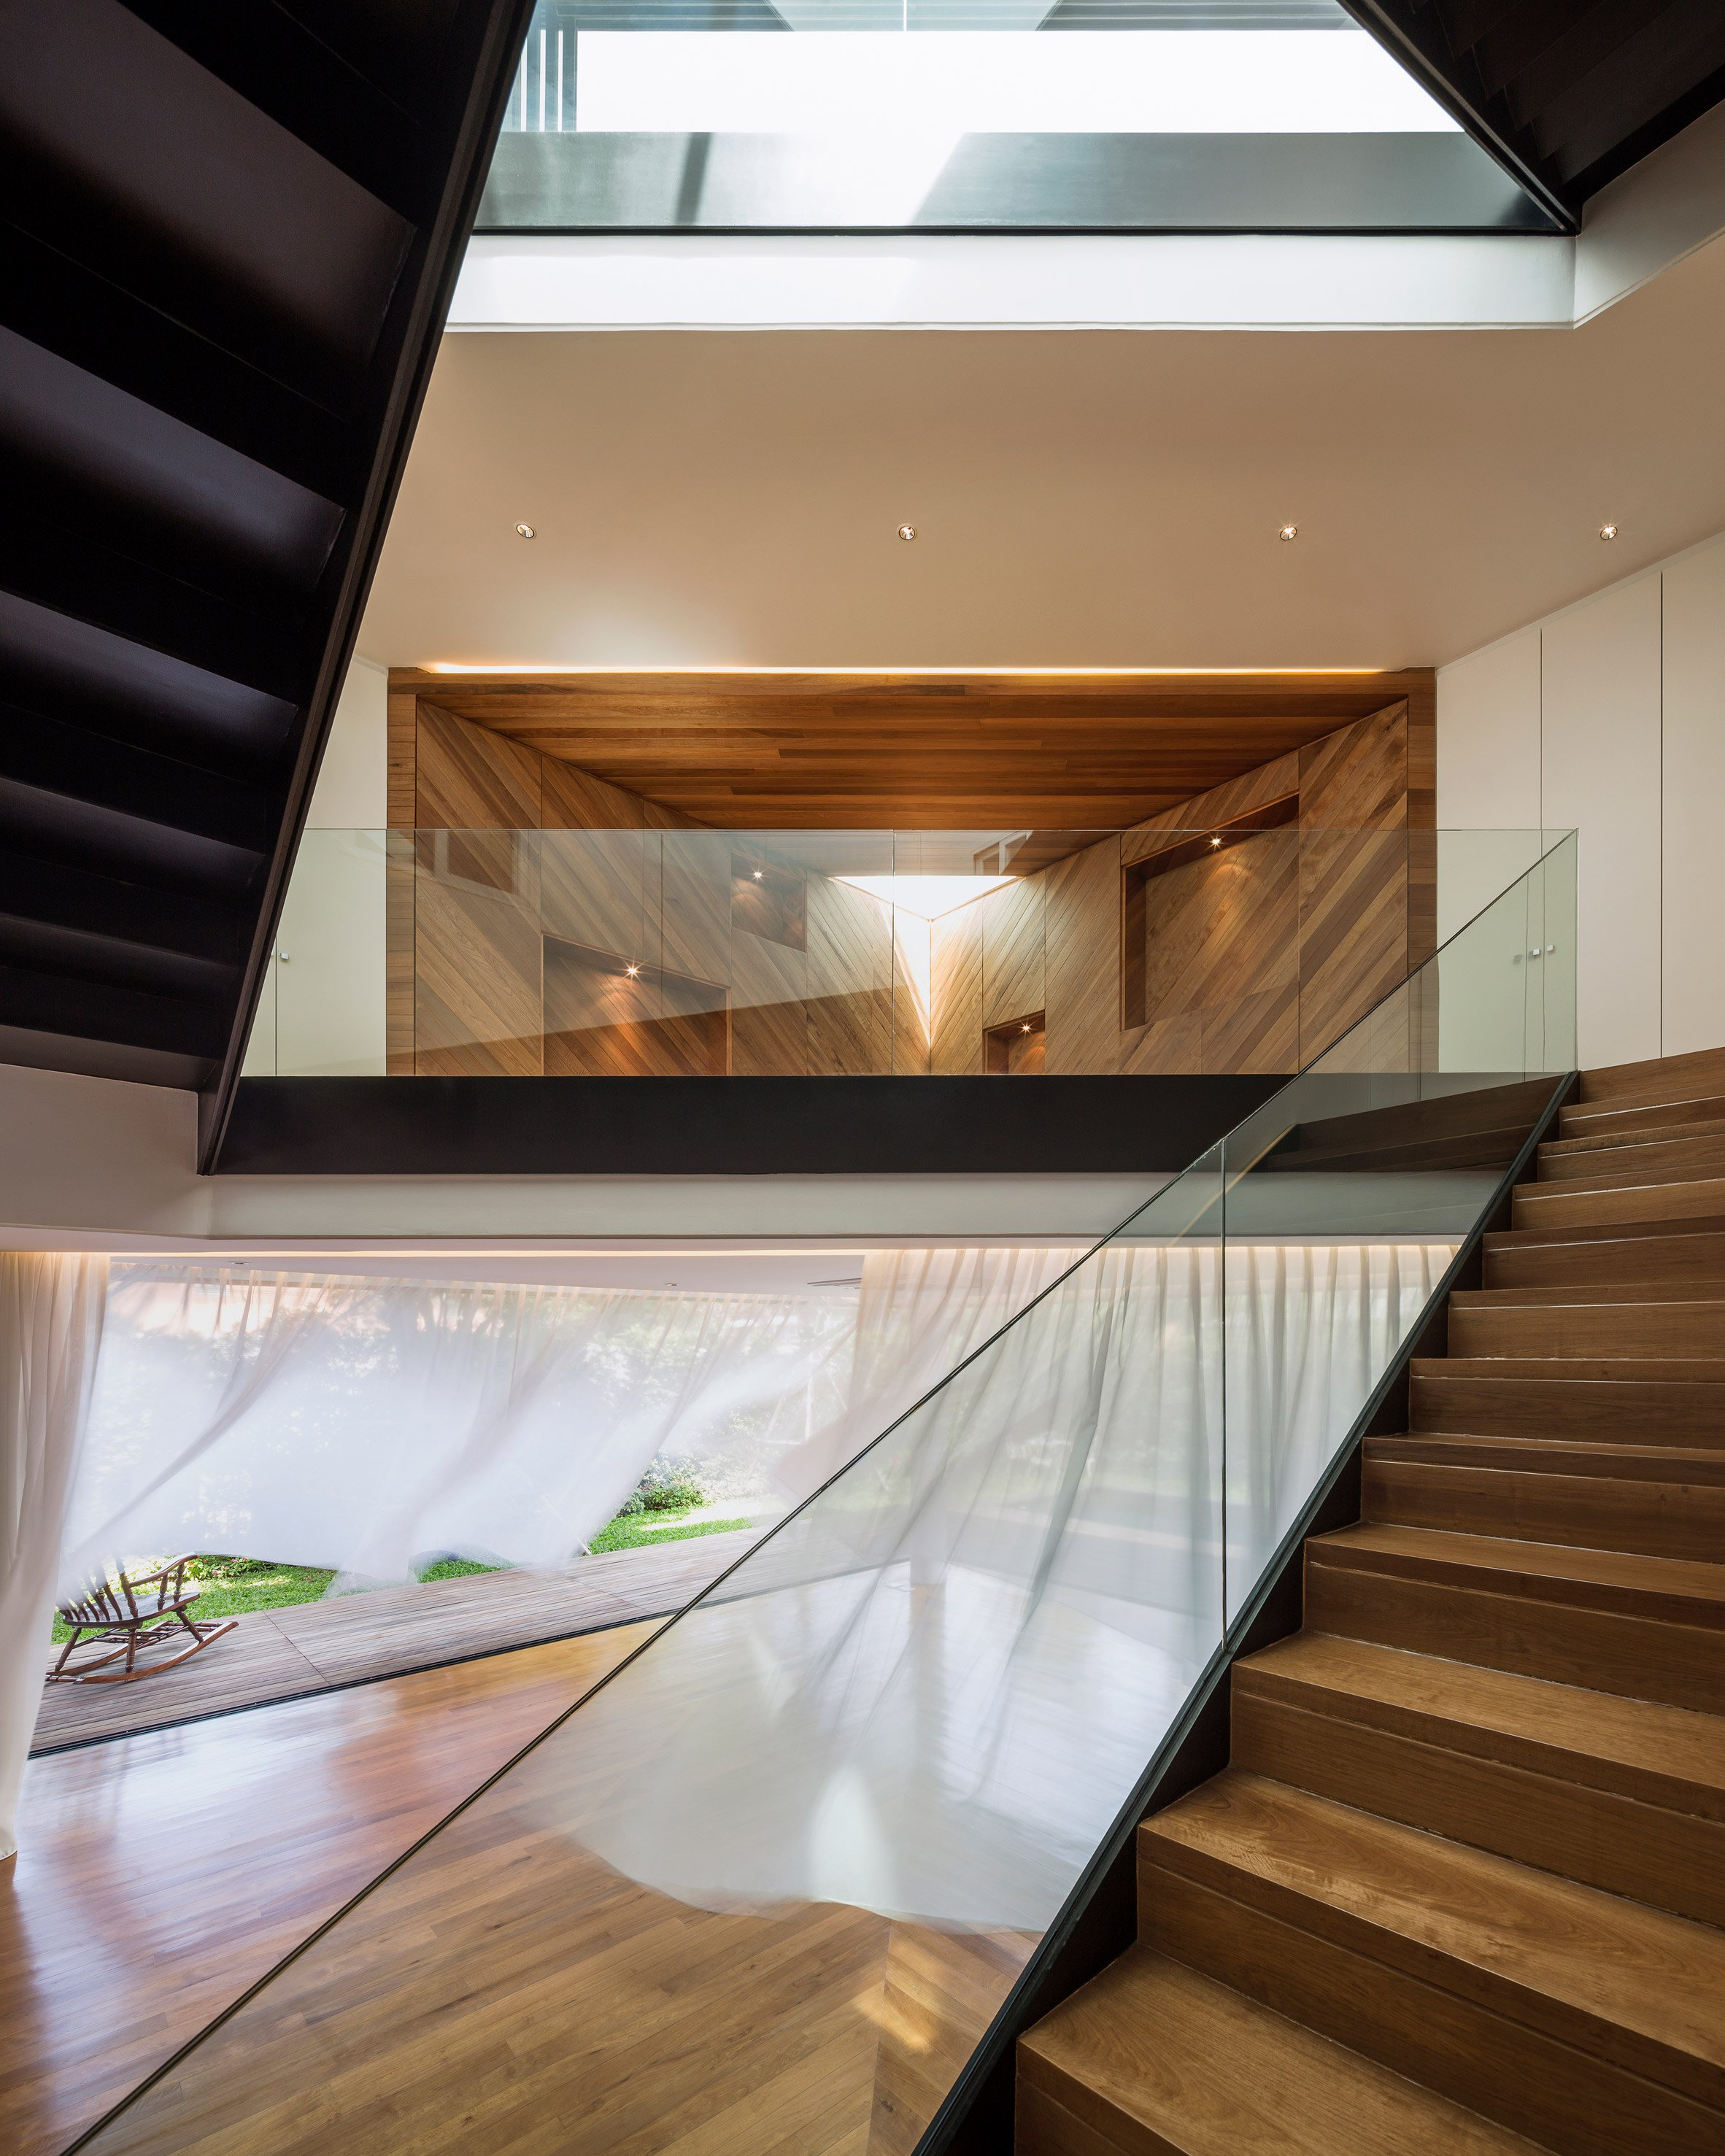 Baan Mom private residence, Bangkok, Thailand, by Integrated Field